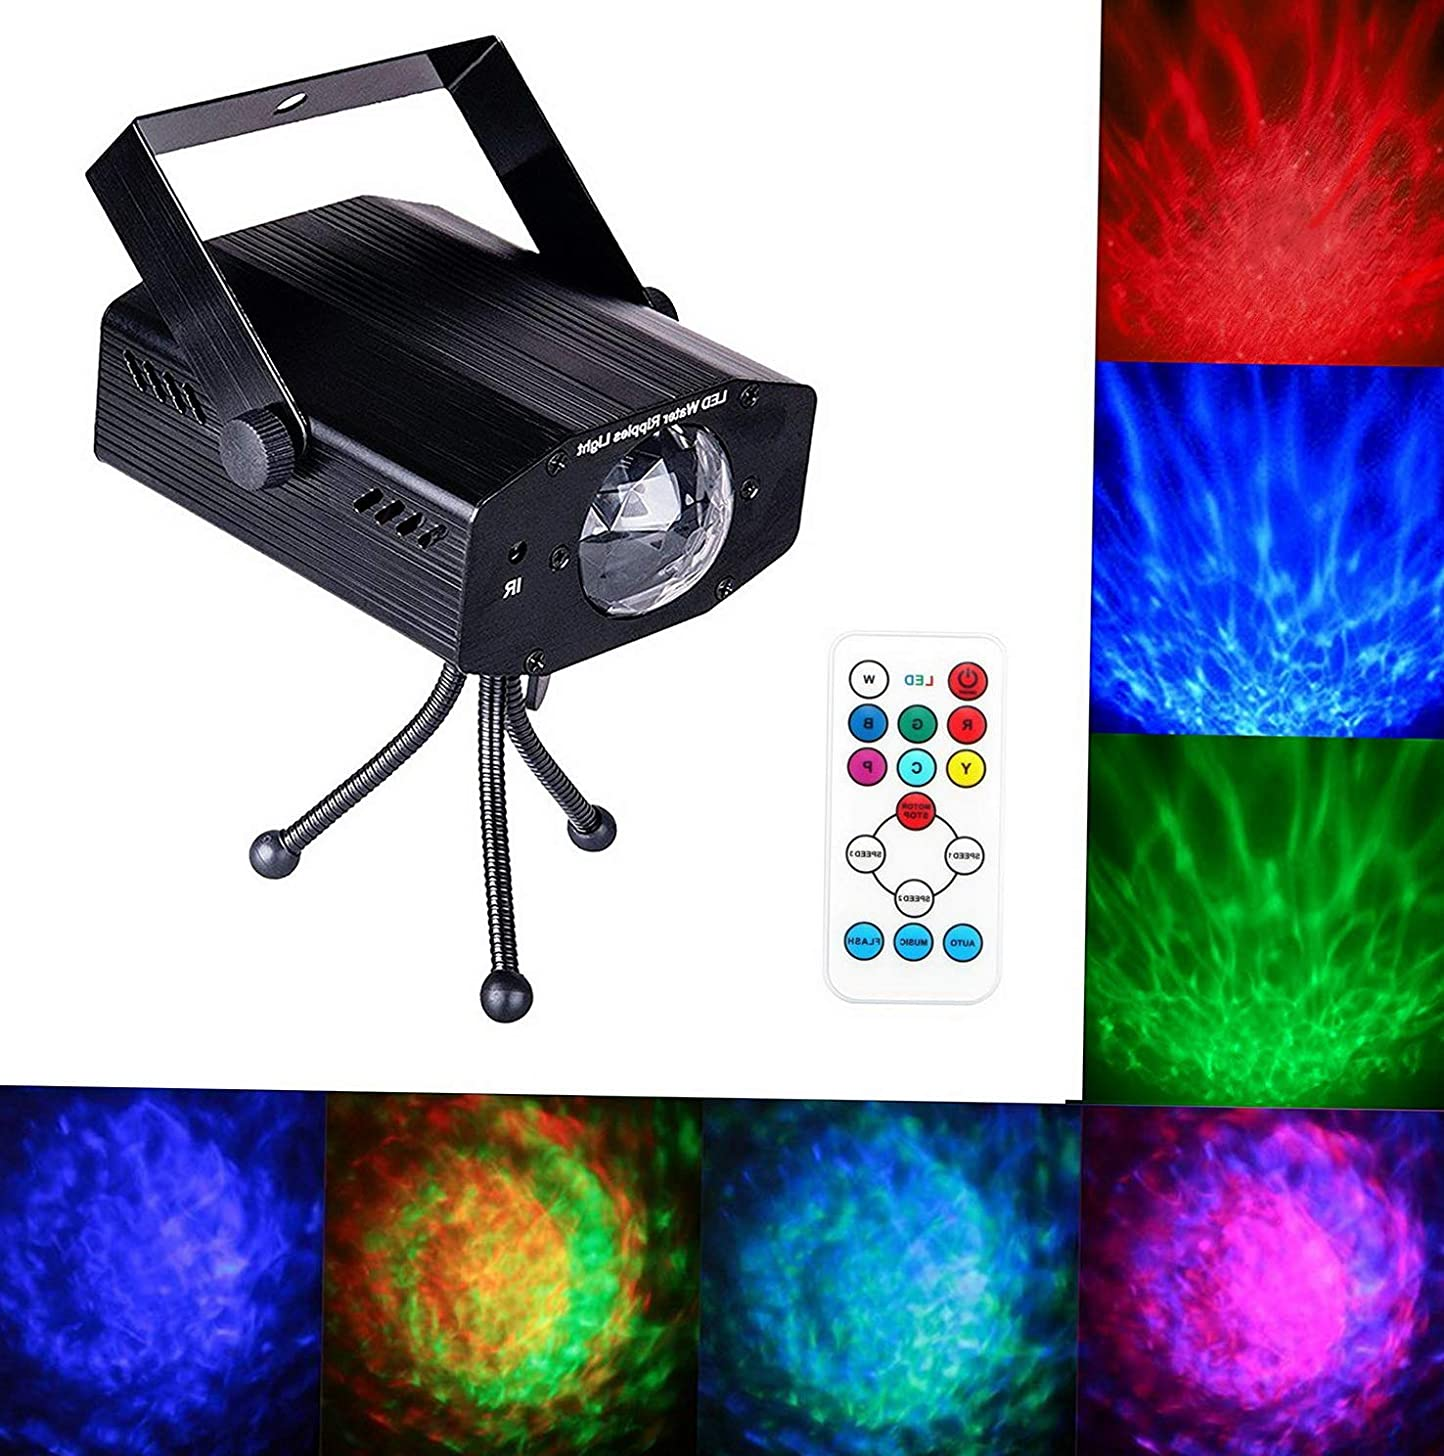 Mikash LED Water Ripples Laser Projector Sound Activated Strobe Stage Lighting RGB Disco Dj Party Show Lights 7 Color with Wireless Remote Control for Club Birthday Wedding | Model WDDNG - 186